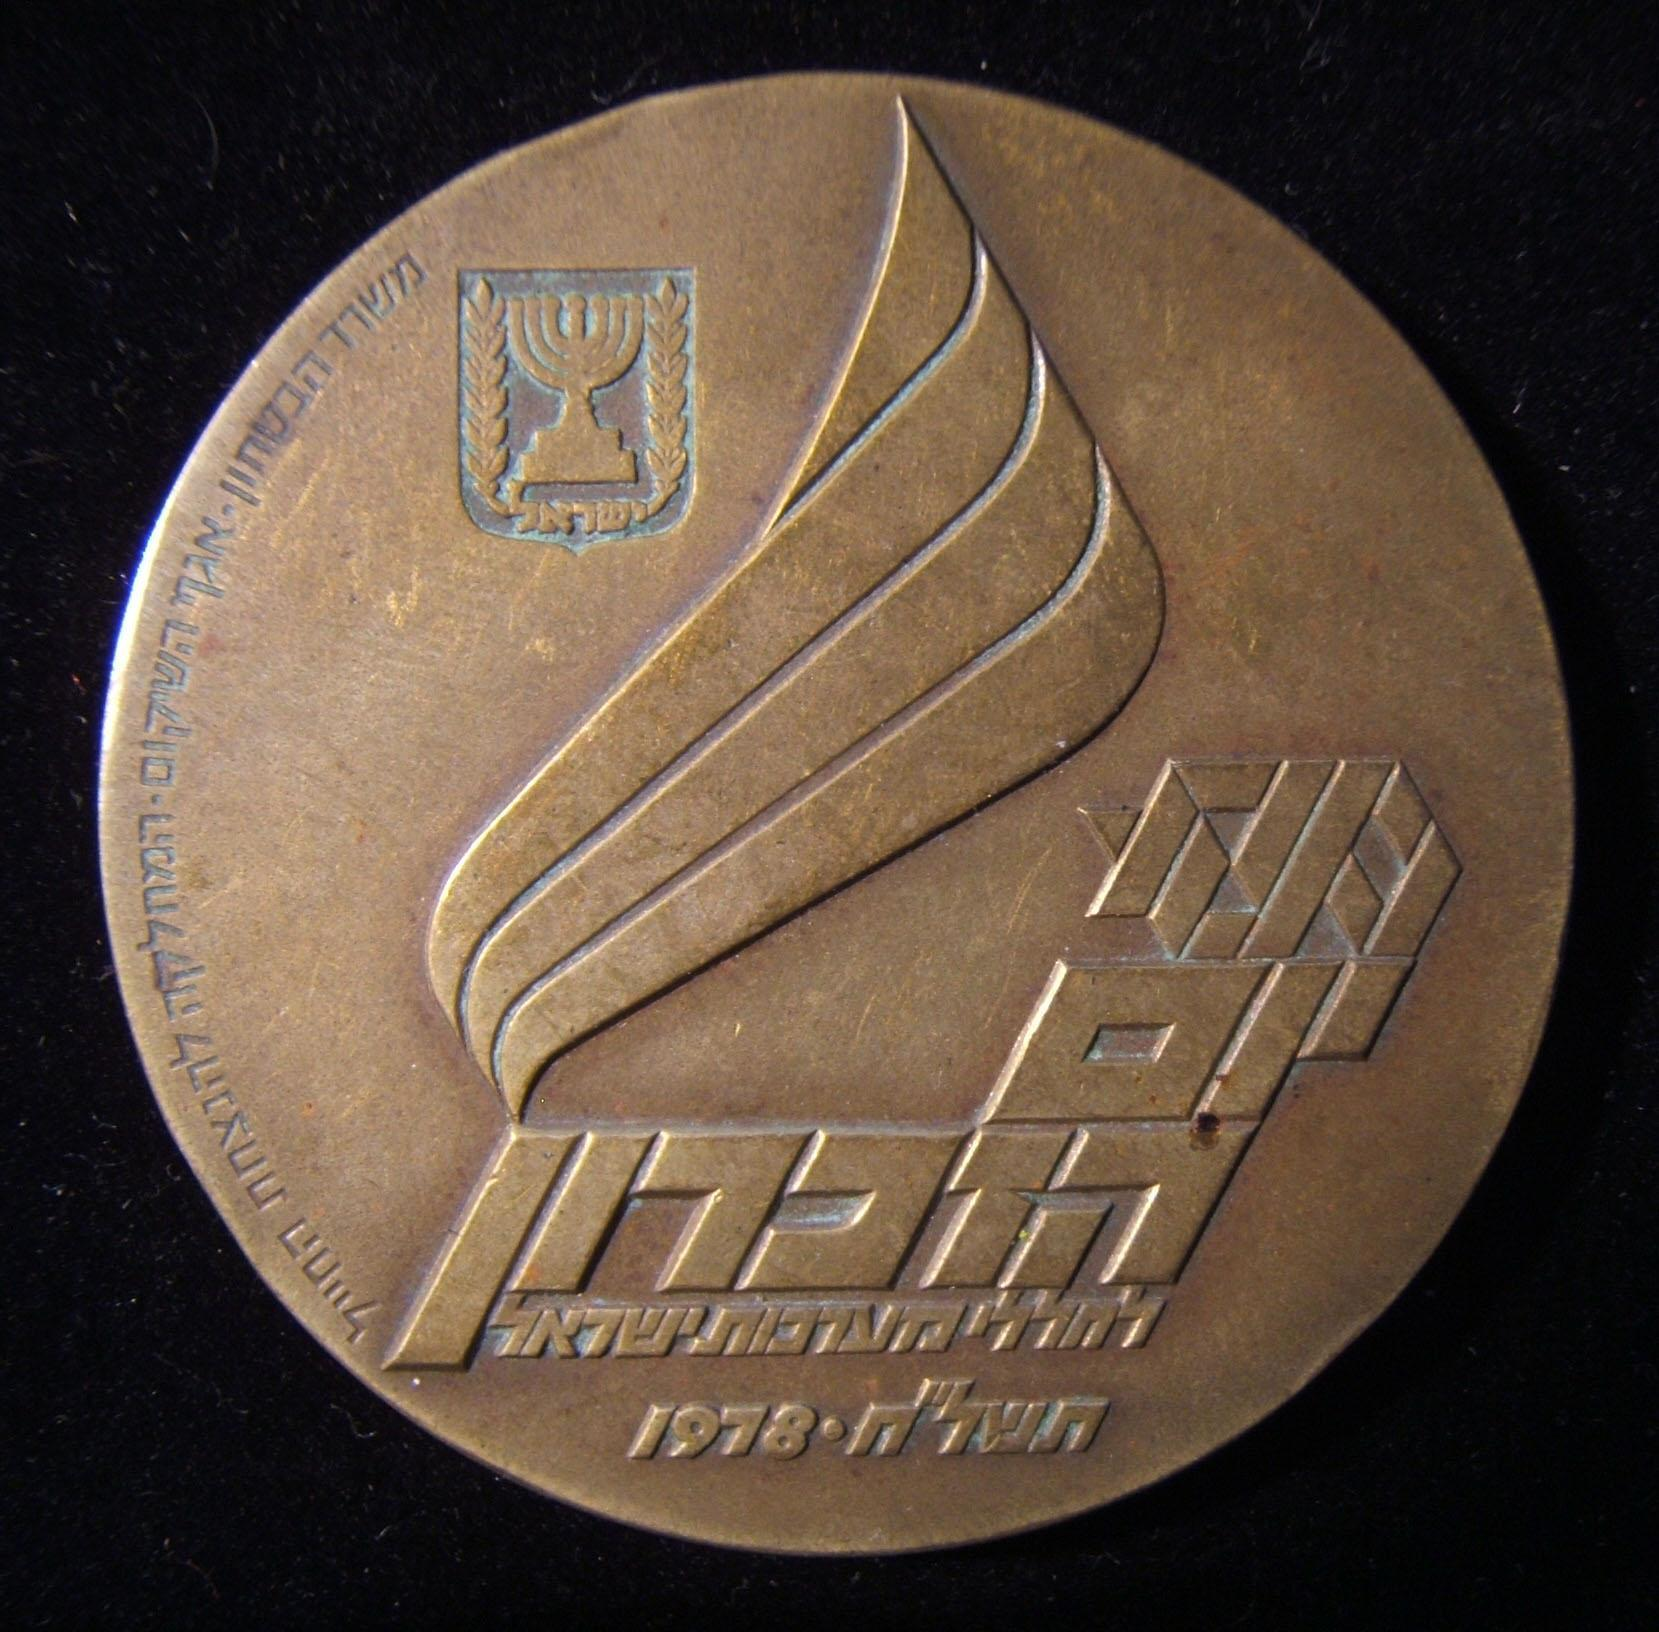 Israeli Army/IDF Israel's 30th Remembrance Day commemoration medal, 1978